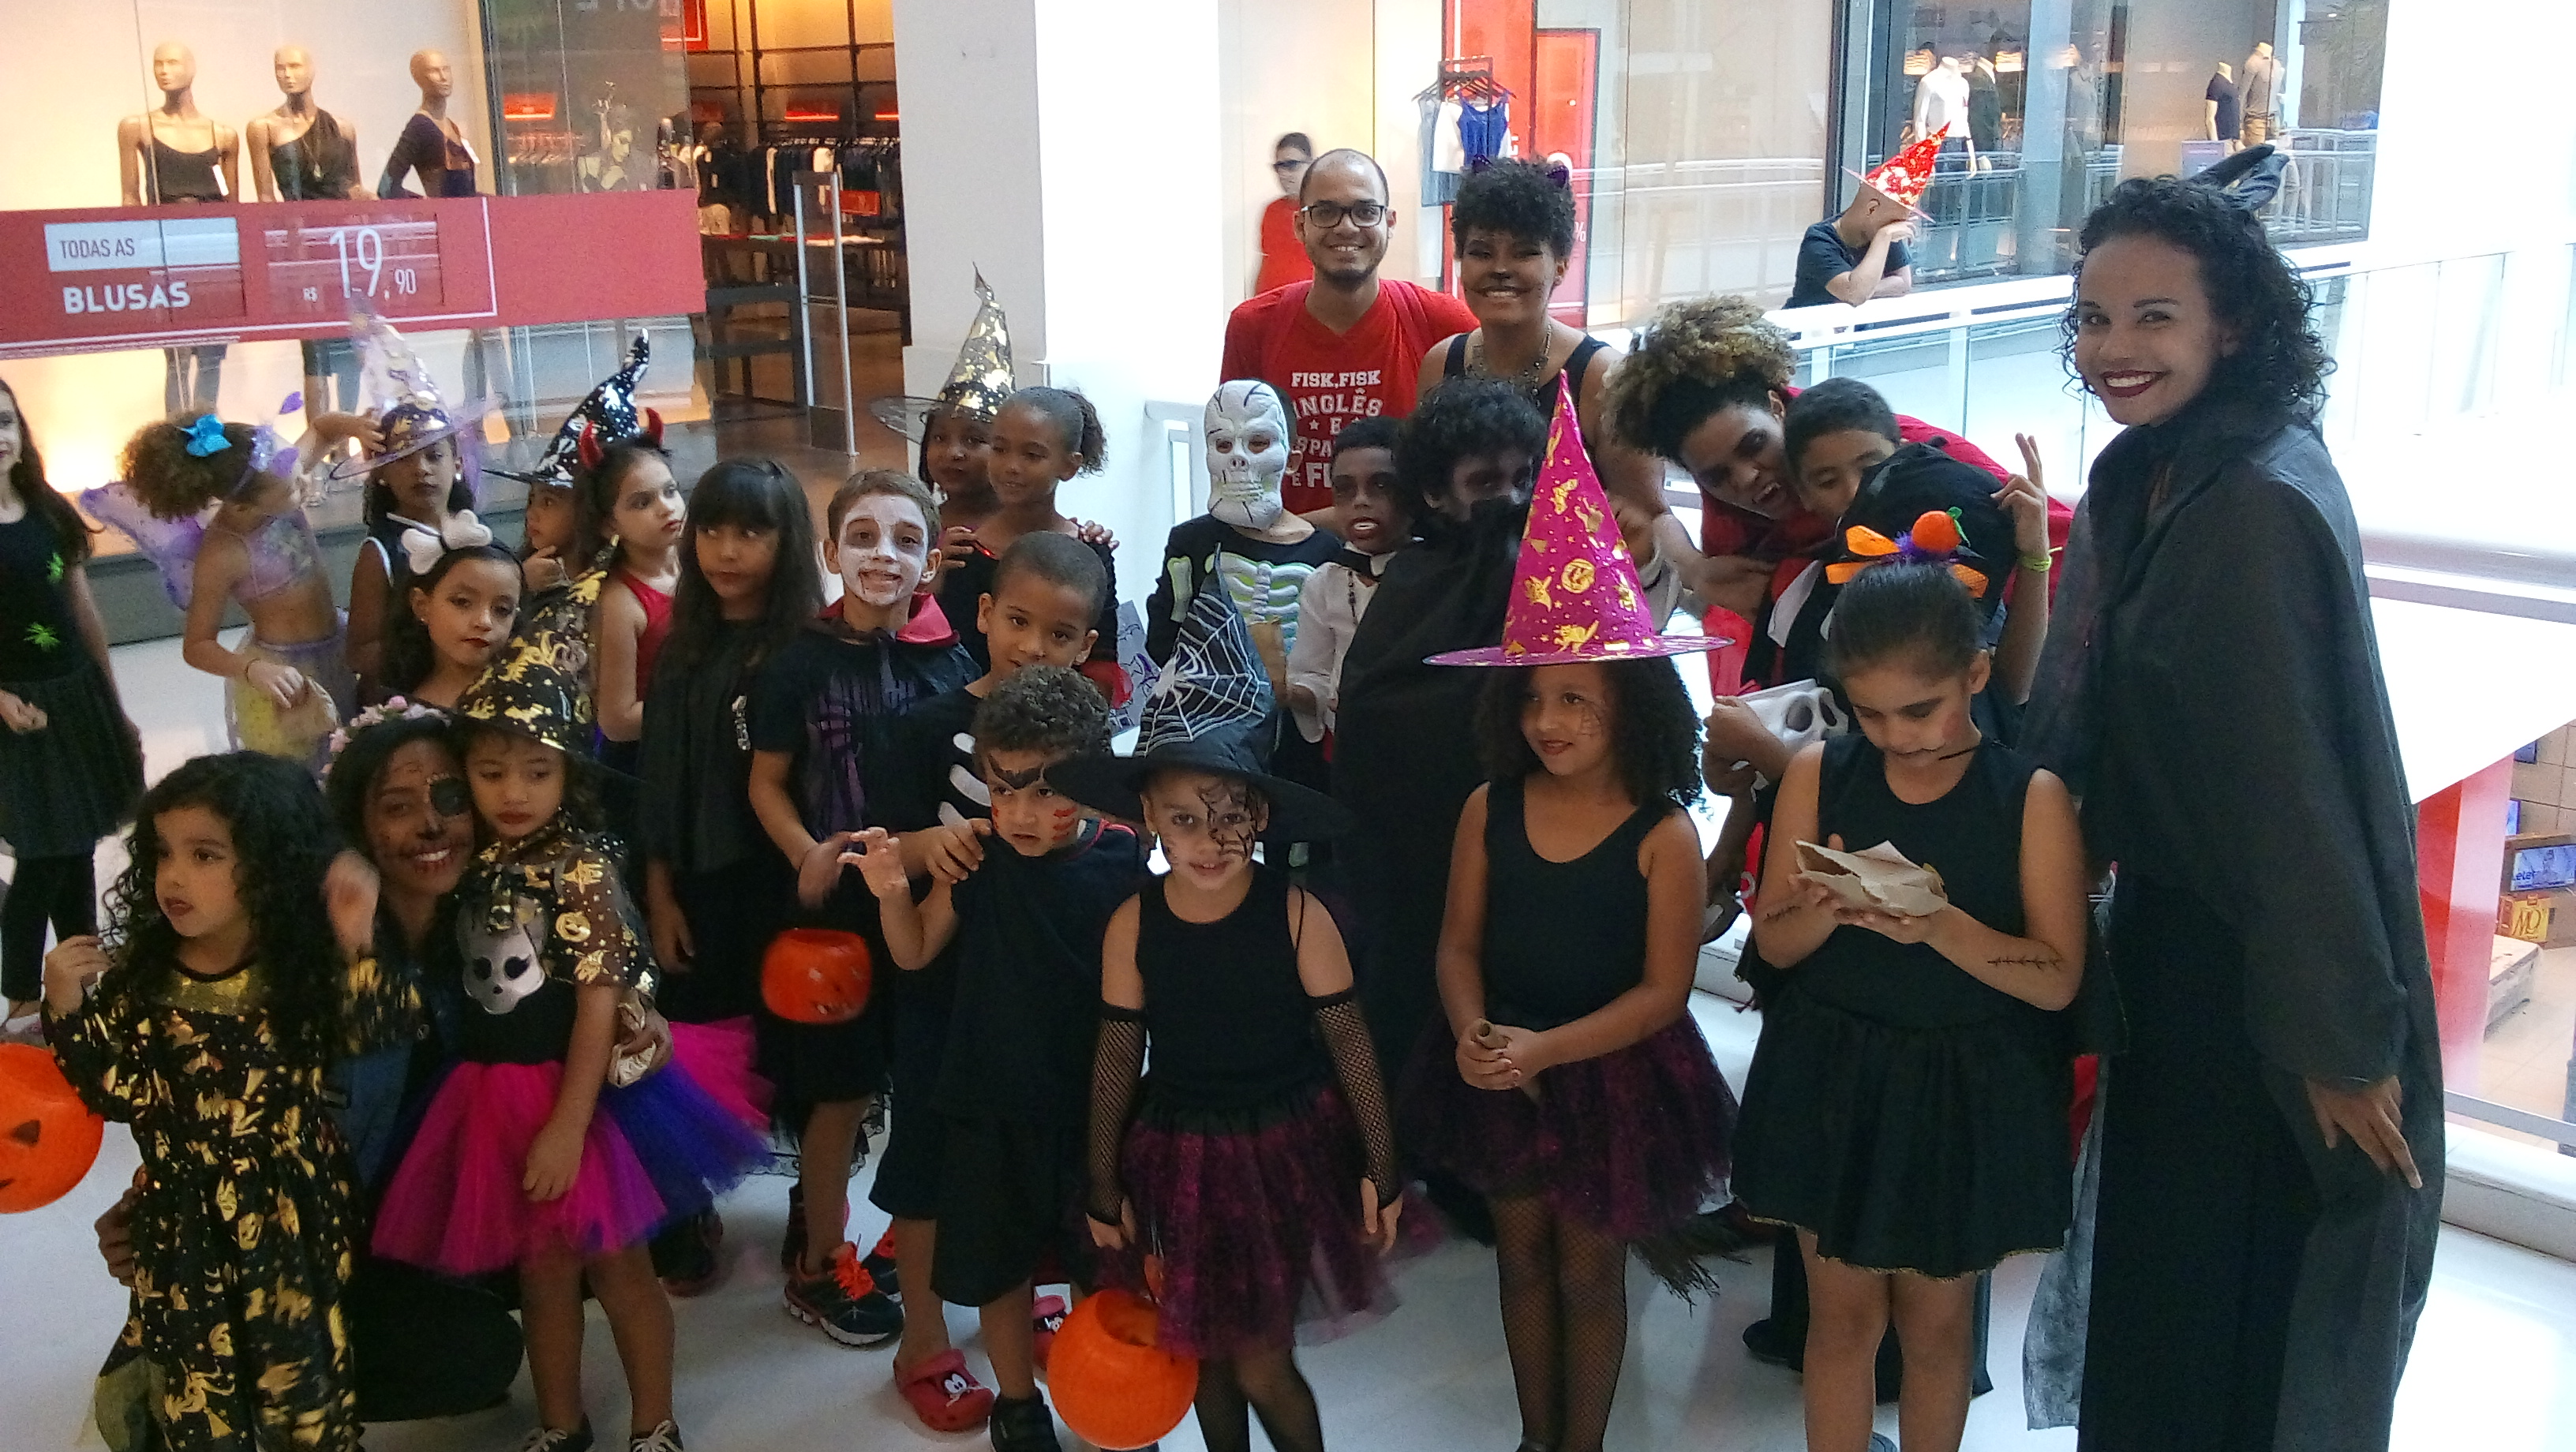 Fisk Salvador/BA - Halloween Fisk Shopping Bela Vista